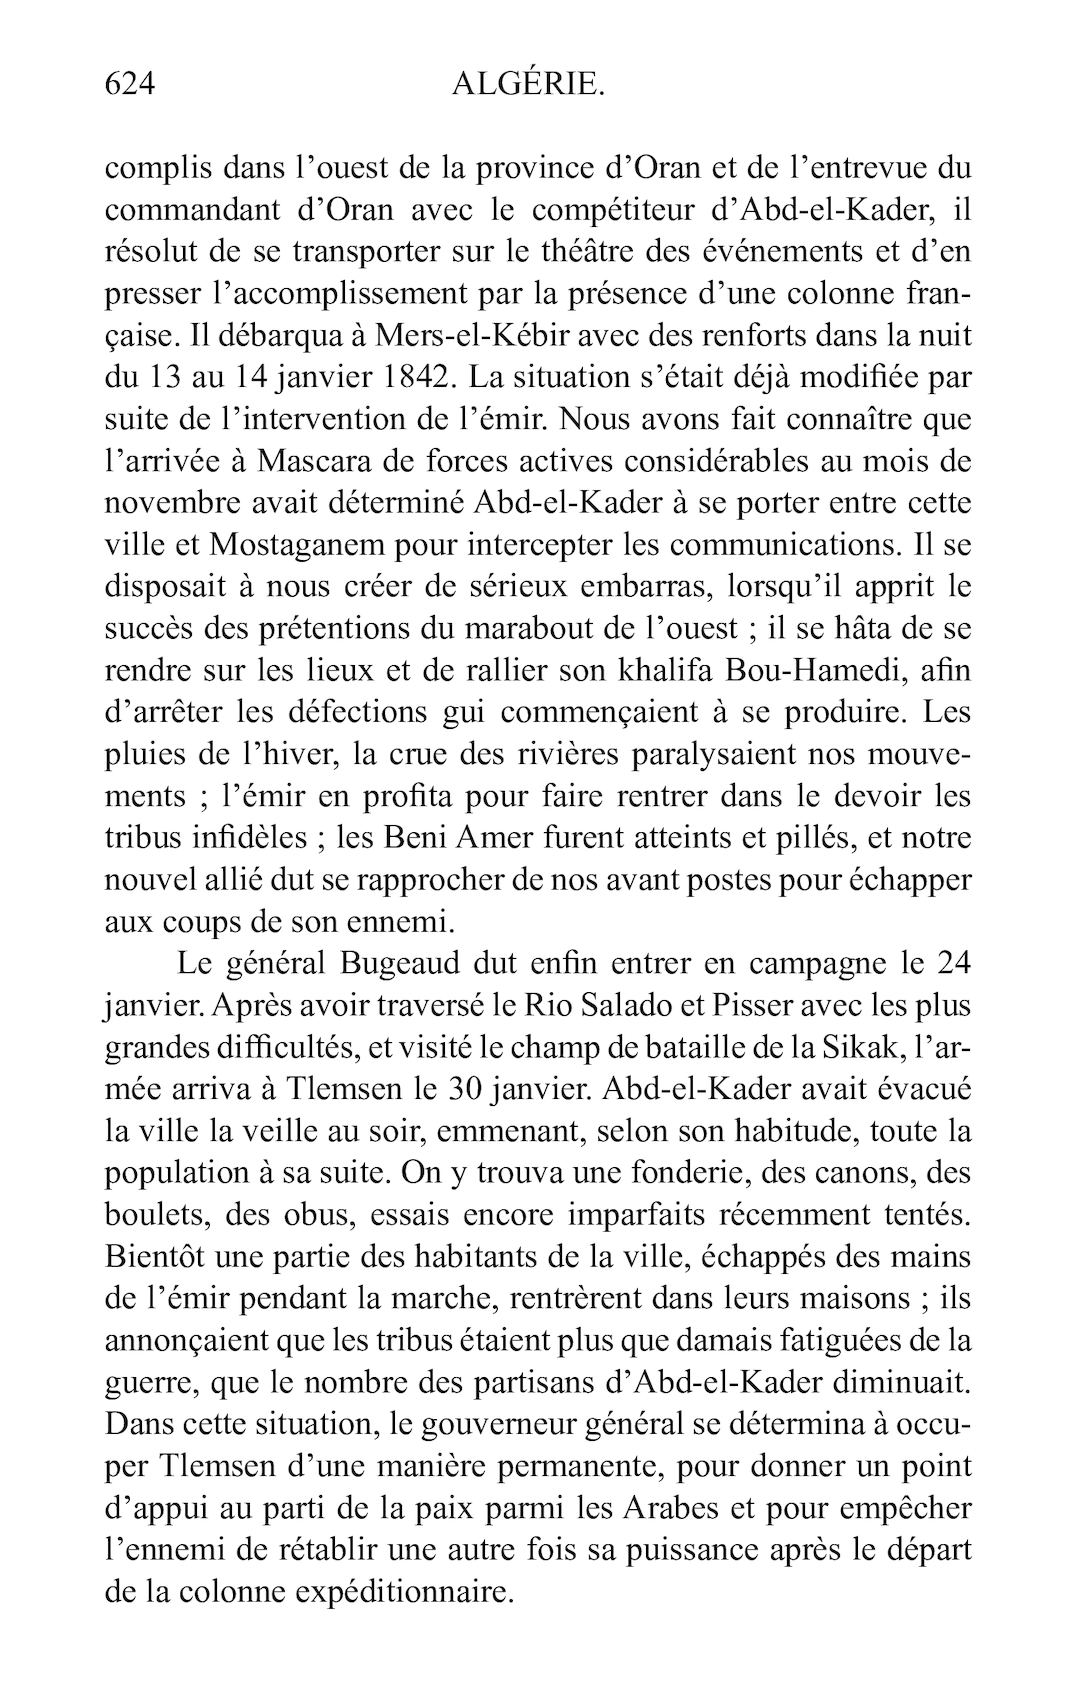 Page 628